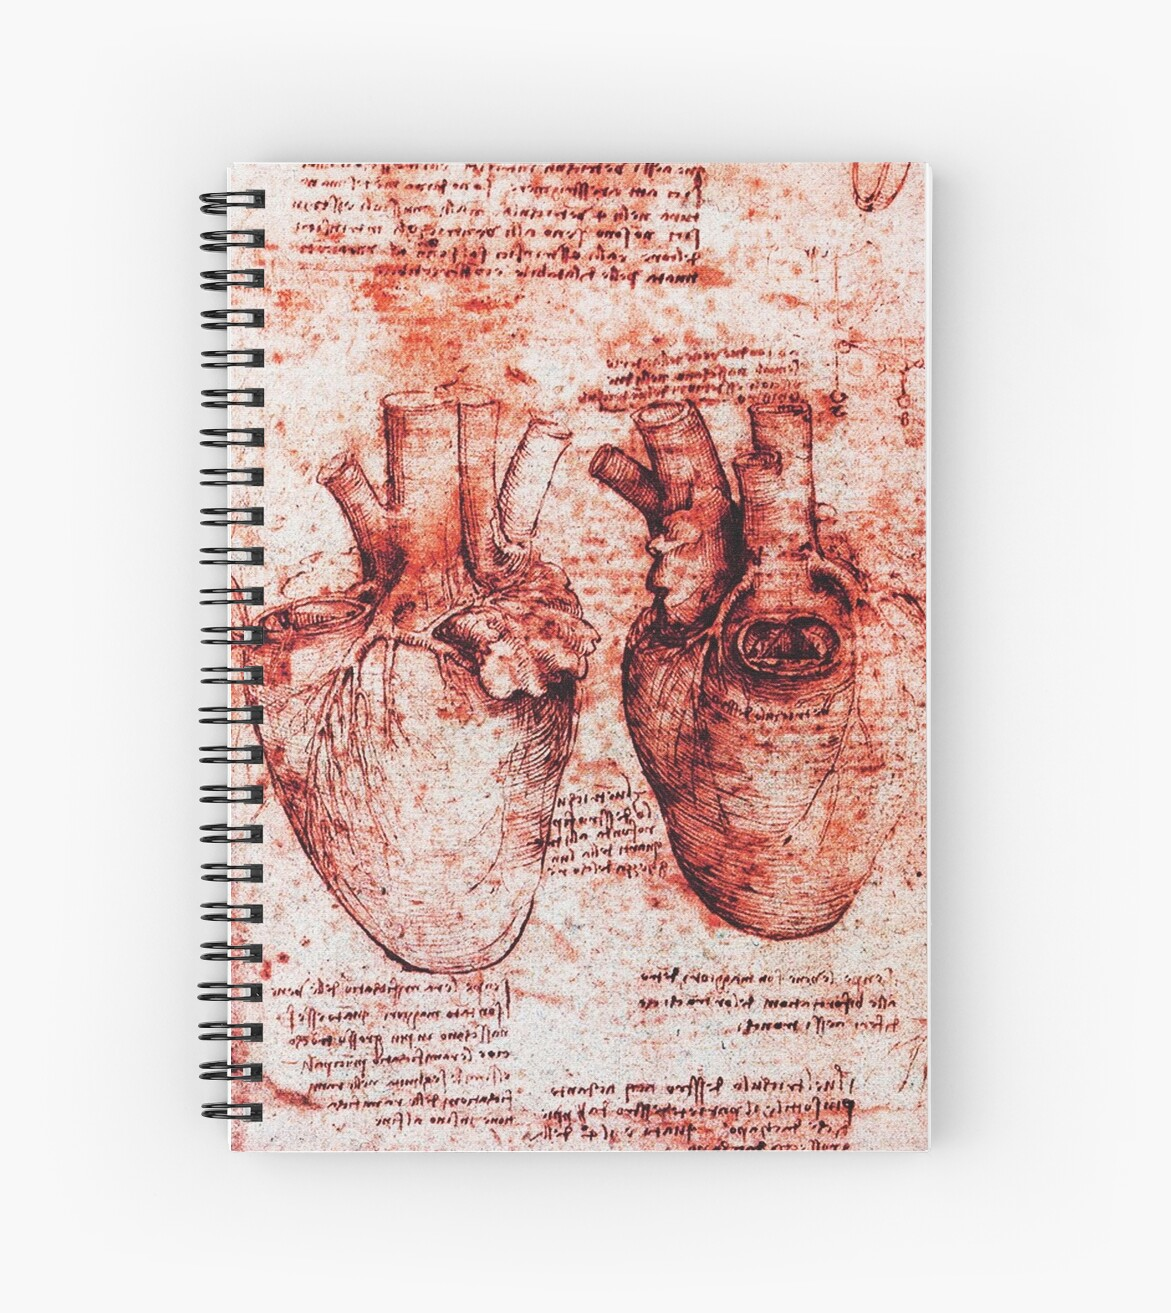 Heart And Its Blood Vessels Leonardo Da Vinci Anatomy Drawings Red